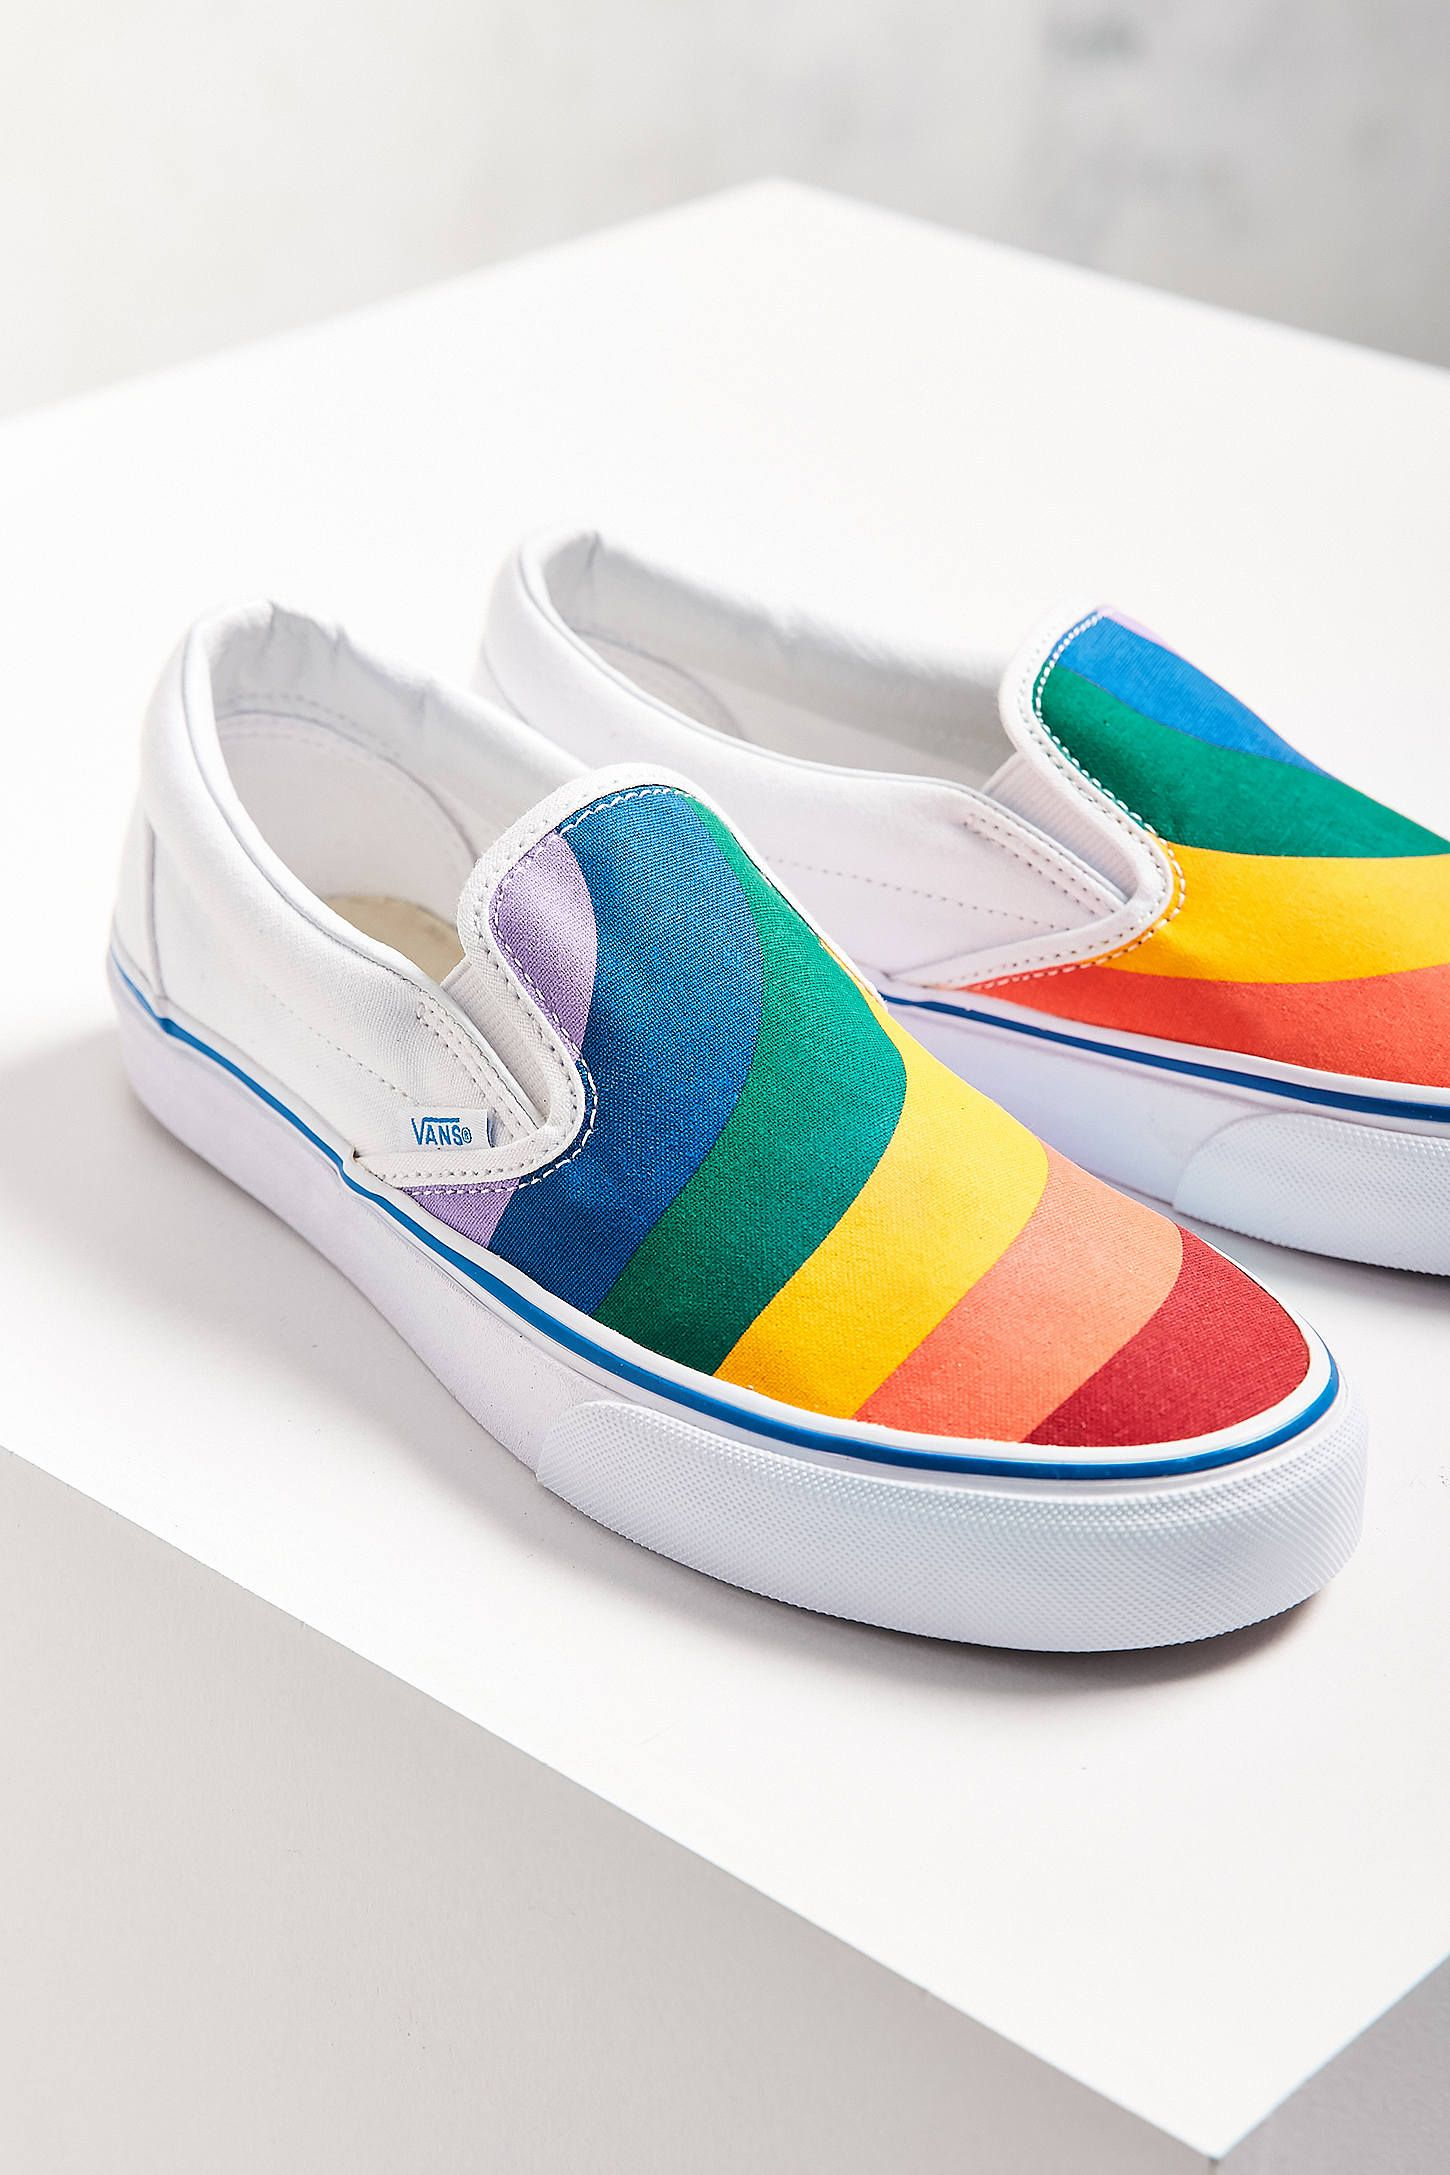 4e18d41d28 Slide View  2  Vans Rainbow Slip-On Sneaker